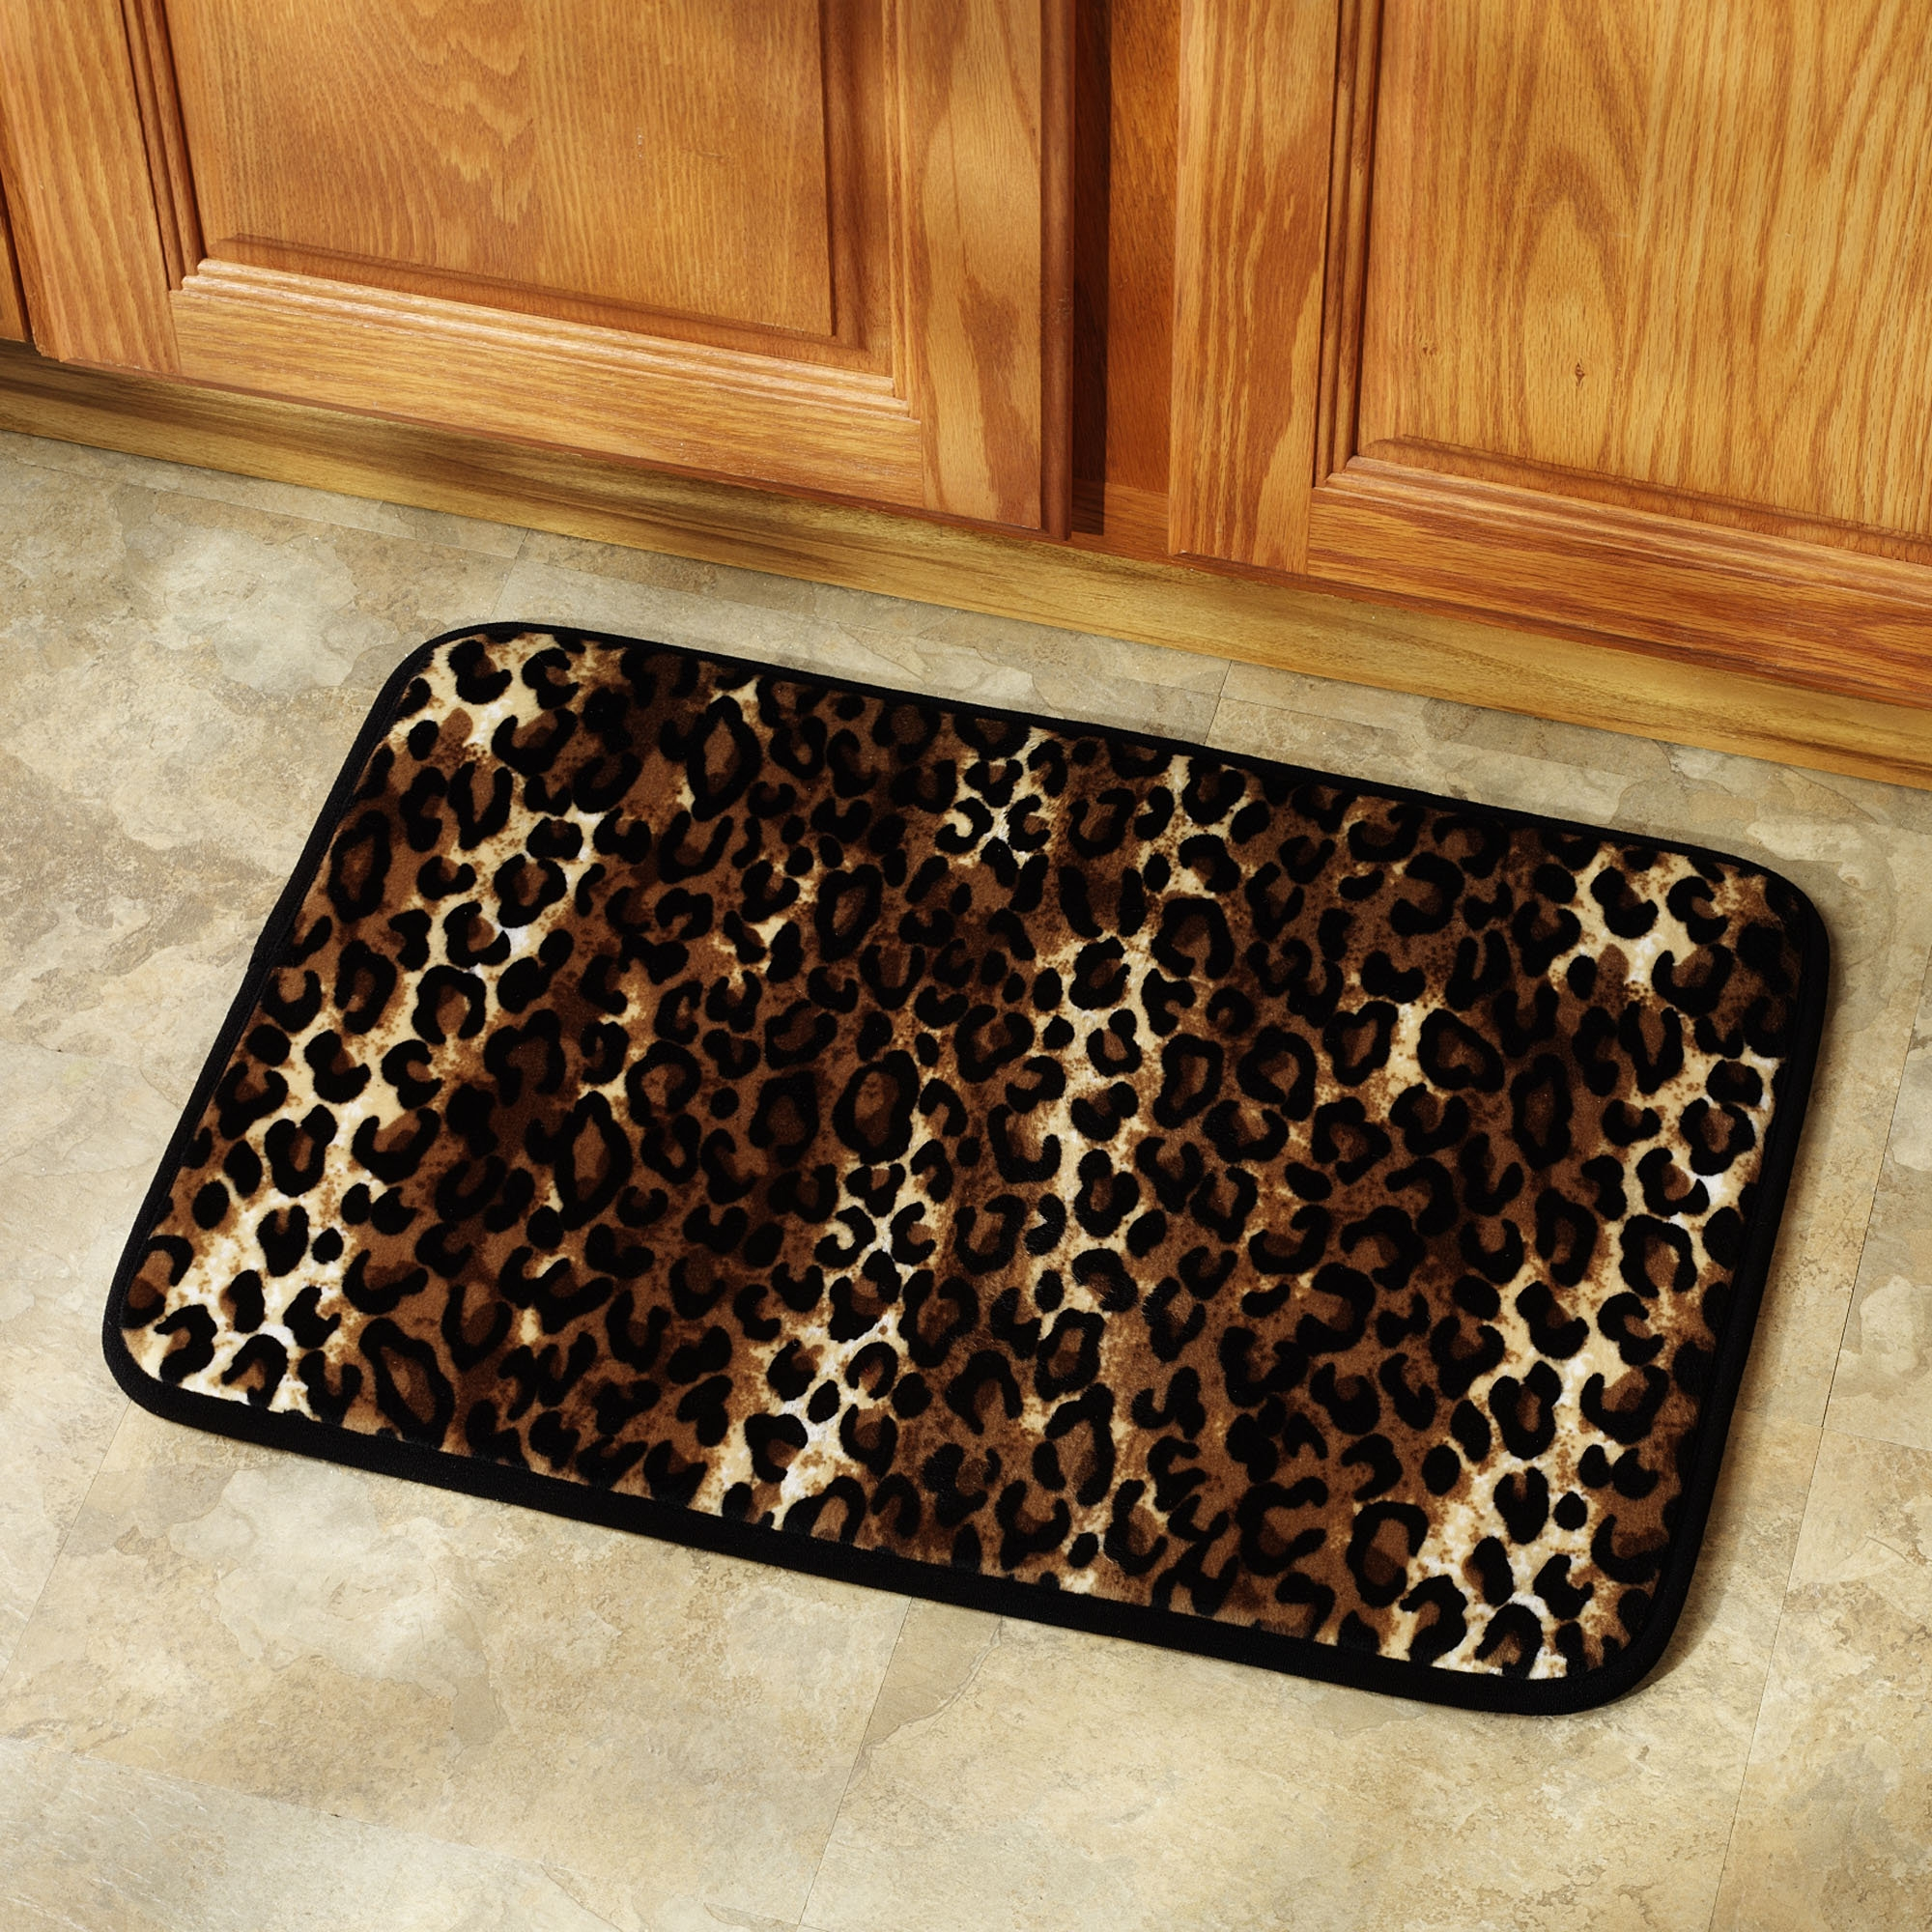 Animal Print Bath Mat2000 X 2000